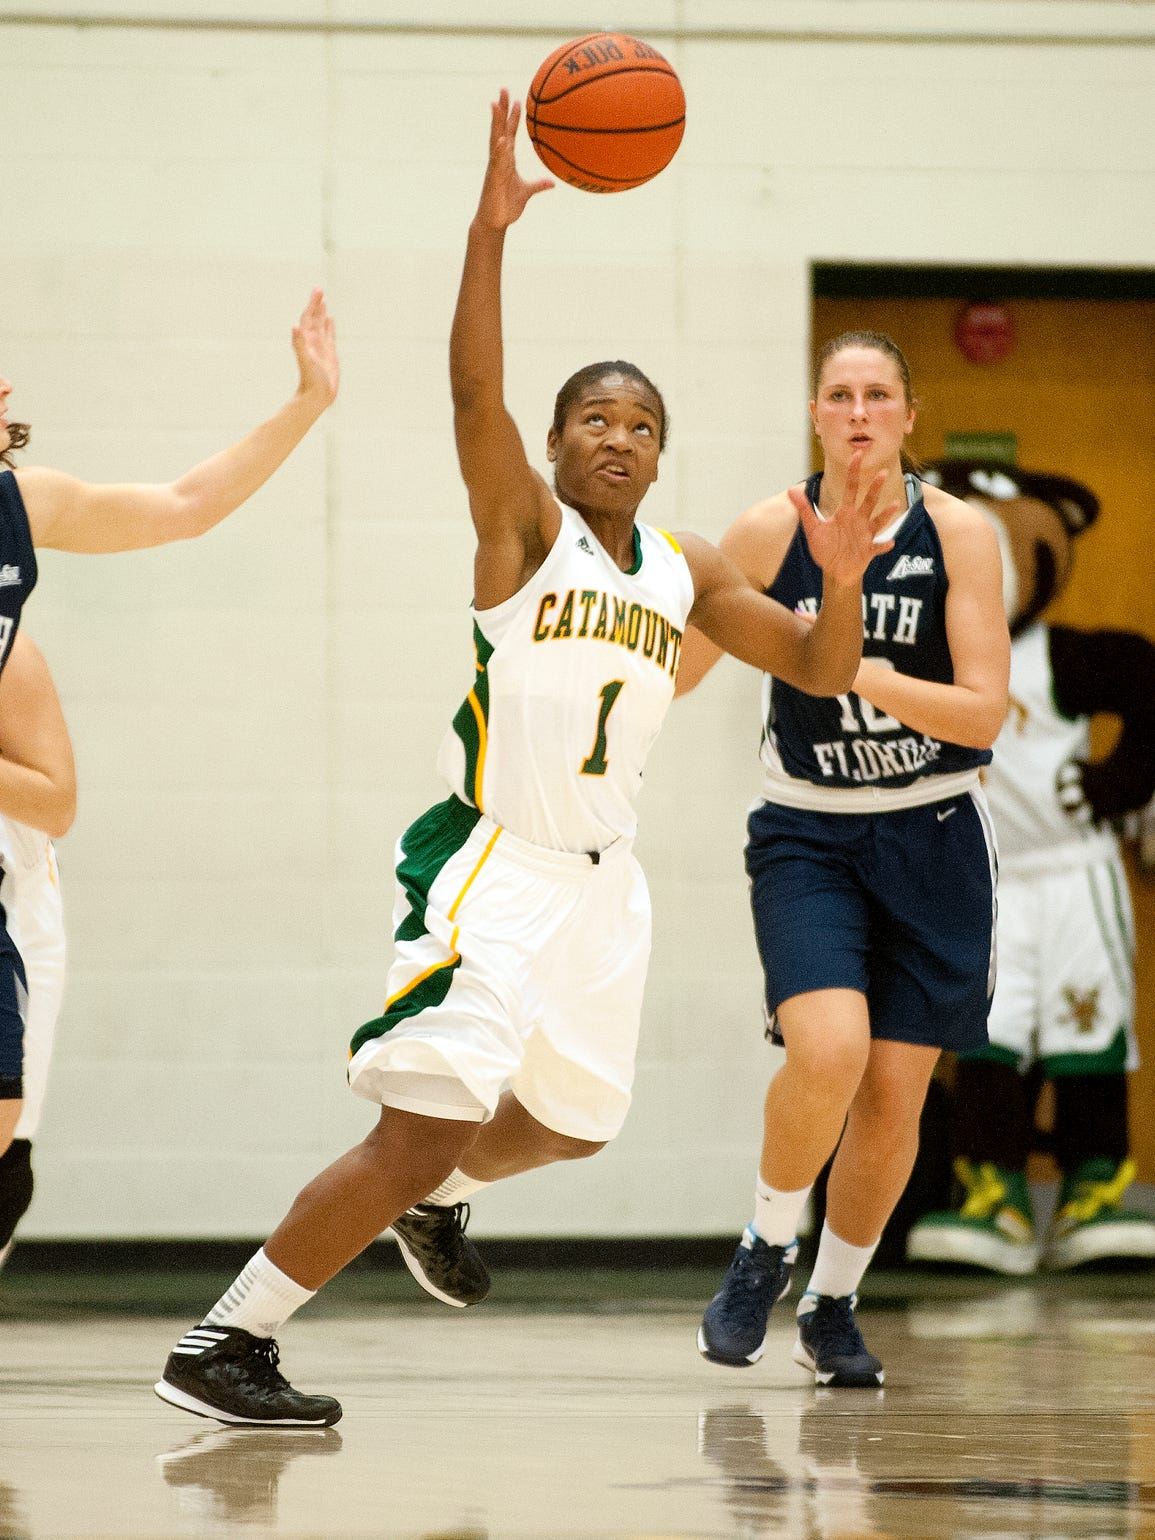 Catamounts guard Kylie Butler, center, grabs the loose